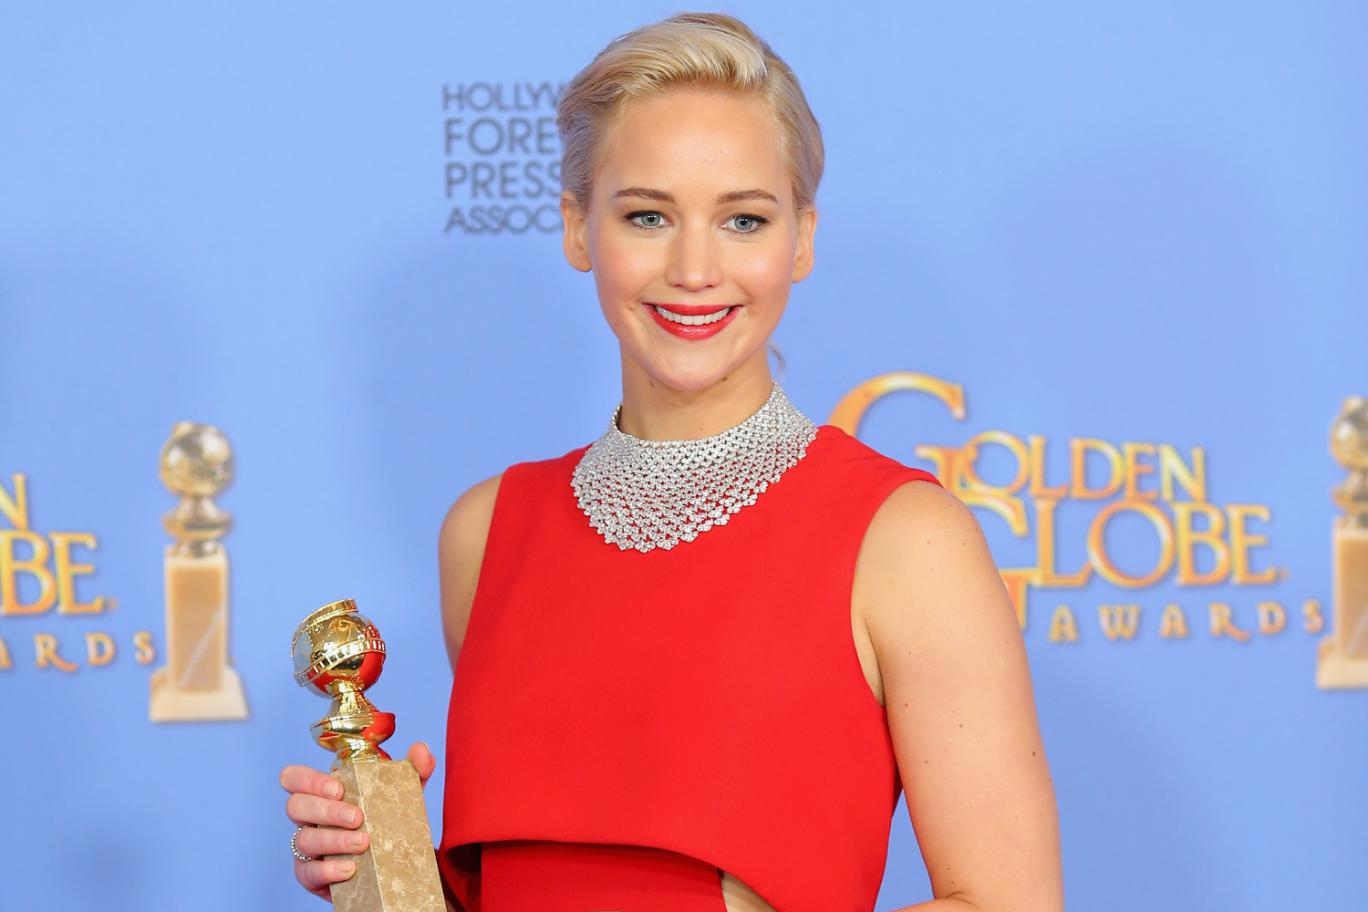 JLaw Rude to Latino Reporter, Who Then Accuses Her of Being on Her Period